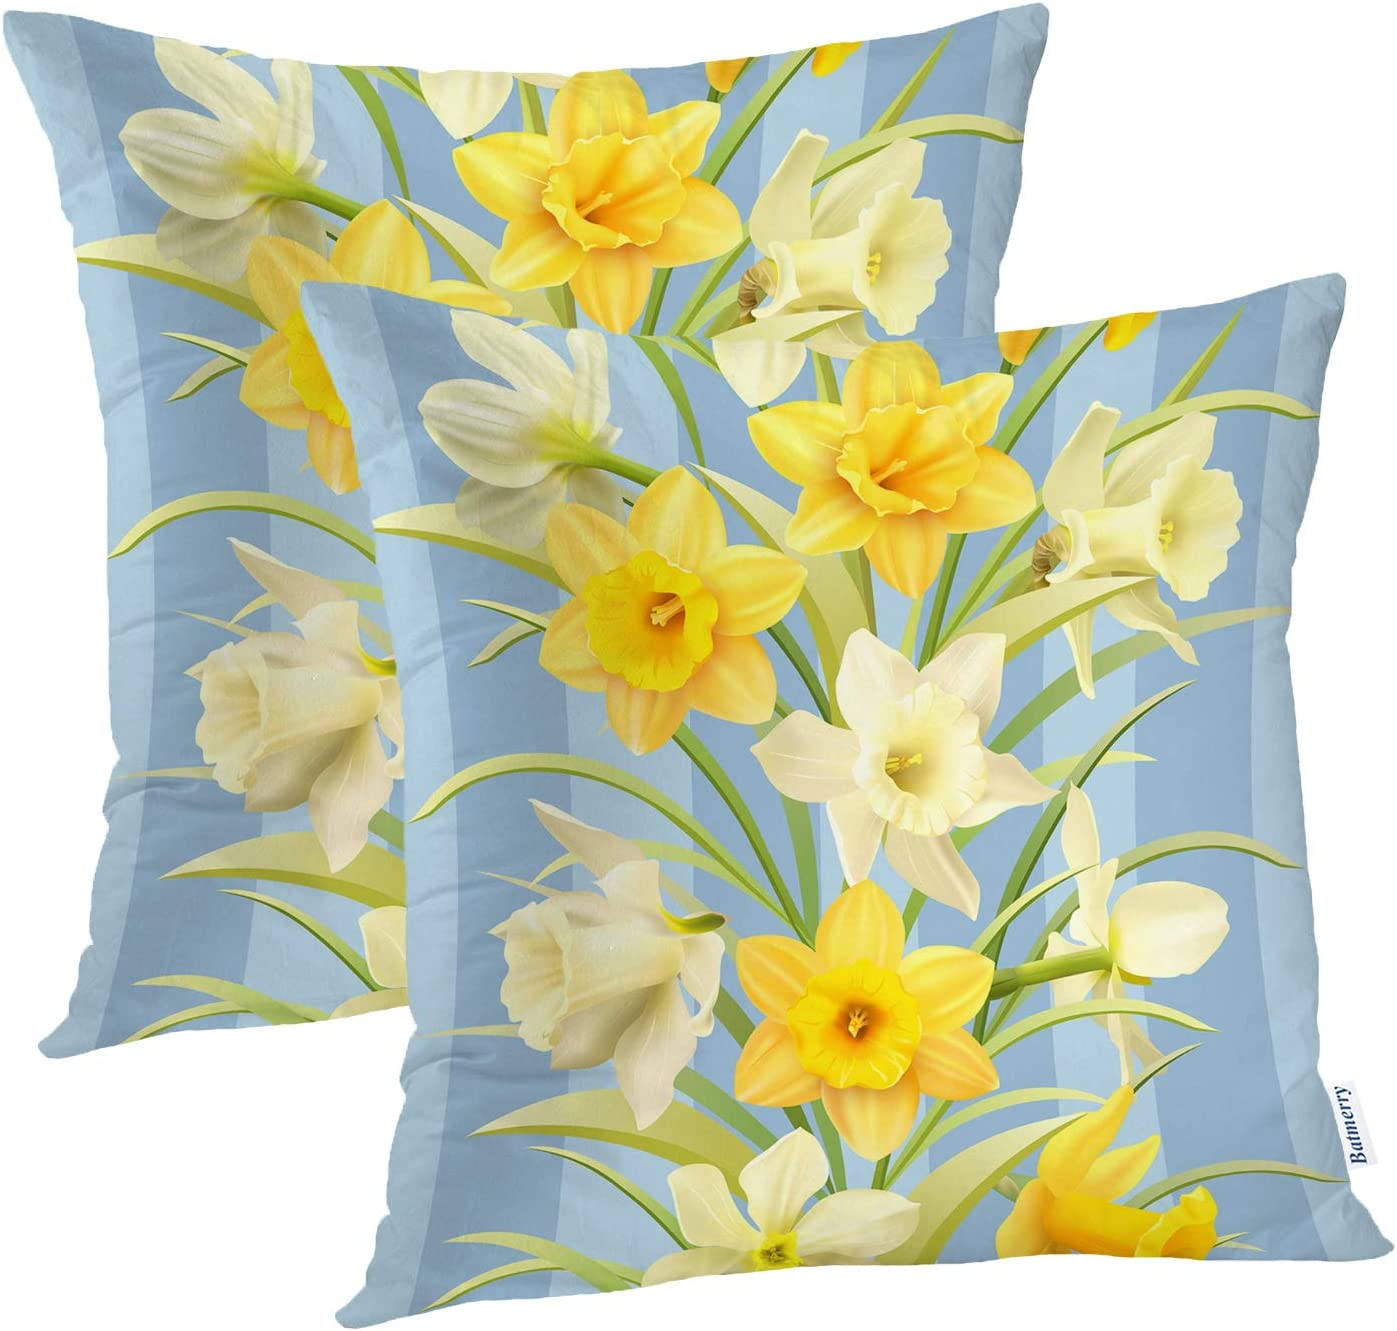 Amazon Com Batmerry Spring Pillows Decorative Throw Pillow Covers 18x18 Inch Set Of 2 Spring White Daffodils Flowers Delicate Pattern Double Sided Square Pillow Cases Pillowcase Sofa Cushion Home Kitchen